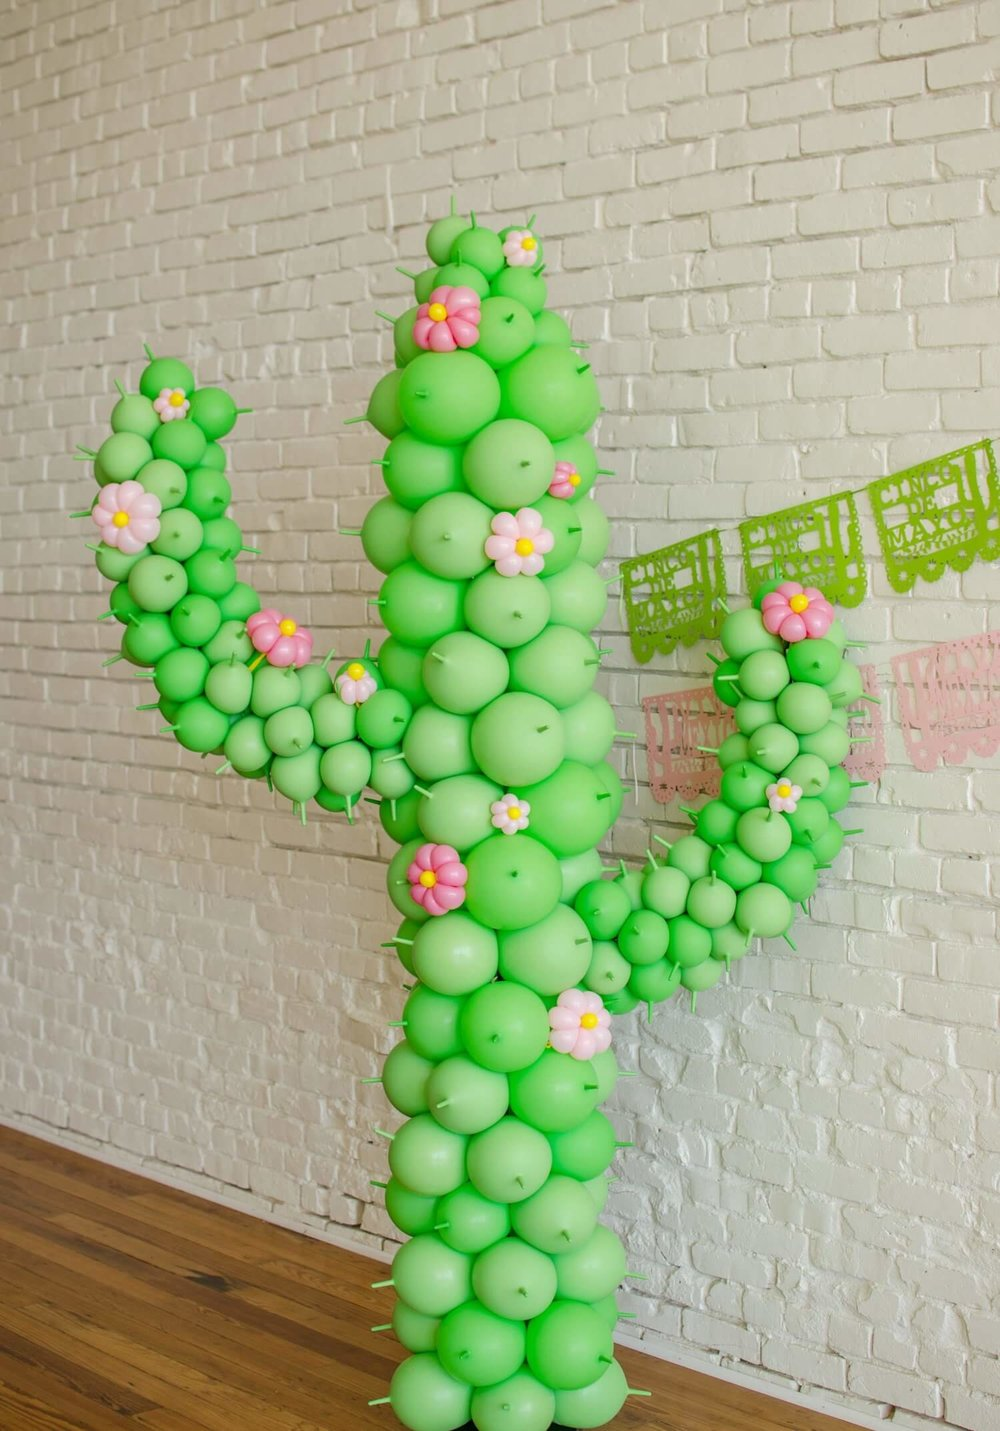 Cactus Balloon art, cactus themed party / cactus party decor / Cinco de Mayo party decor / Cinco de Mayo party ideas / Southwestern party ideas / Styled by Carolina from MINT Event Design / www.minteventdesign.com